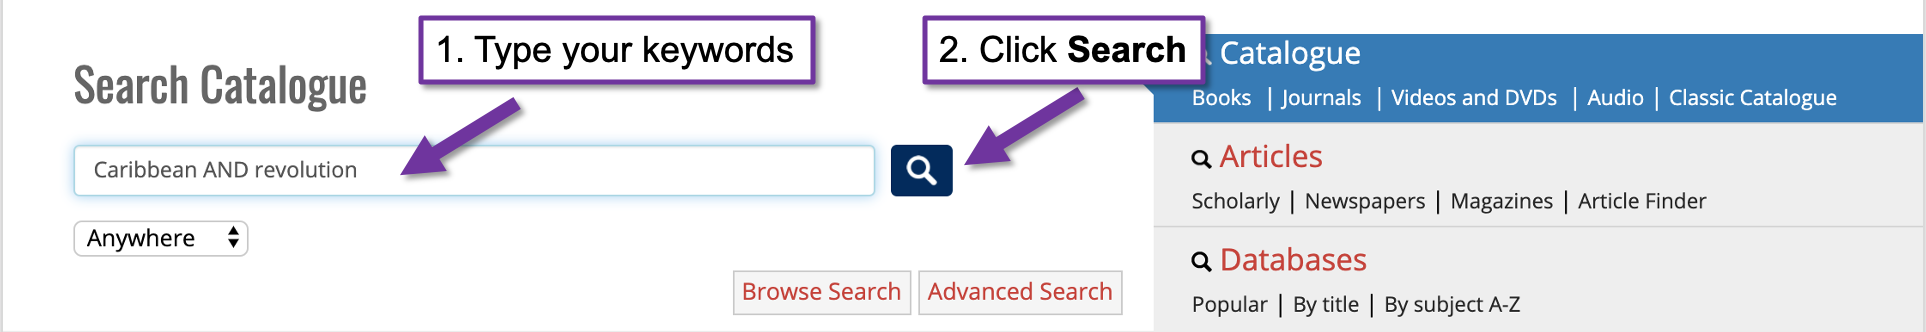 Screenshot of the catalogue search with two arrows, one arrow is pointing to the search bar with the text 1 type your keywords and another arrow pointing to the search button with the text 2. click search